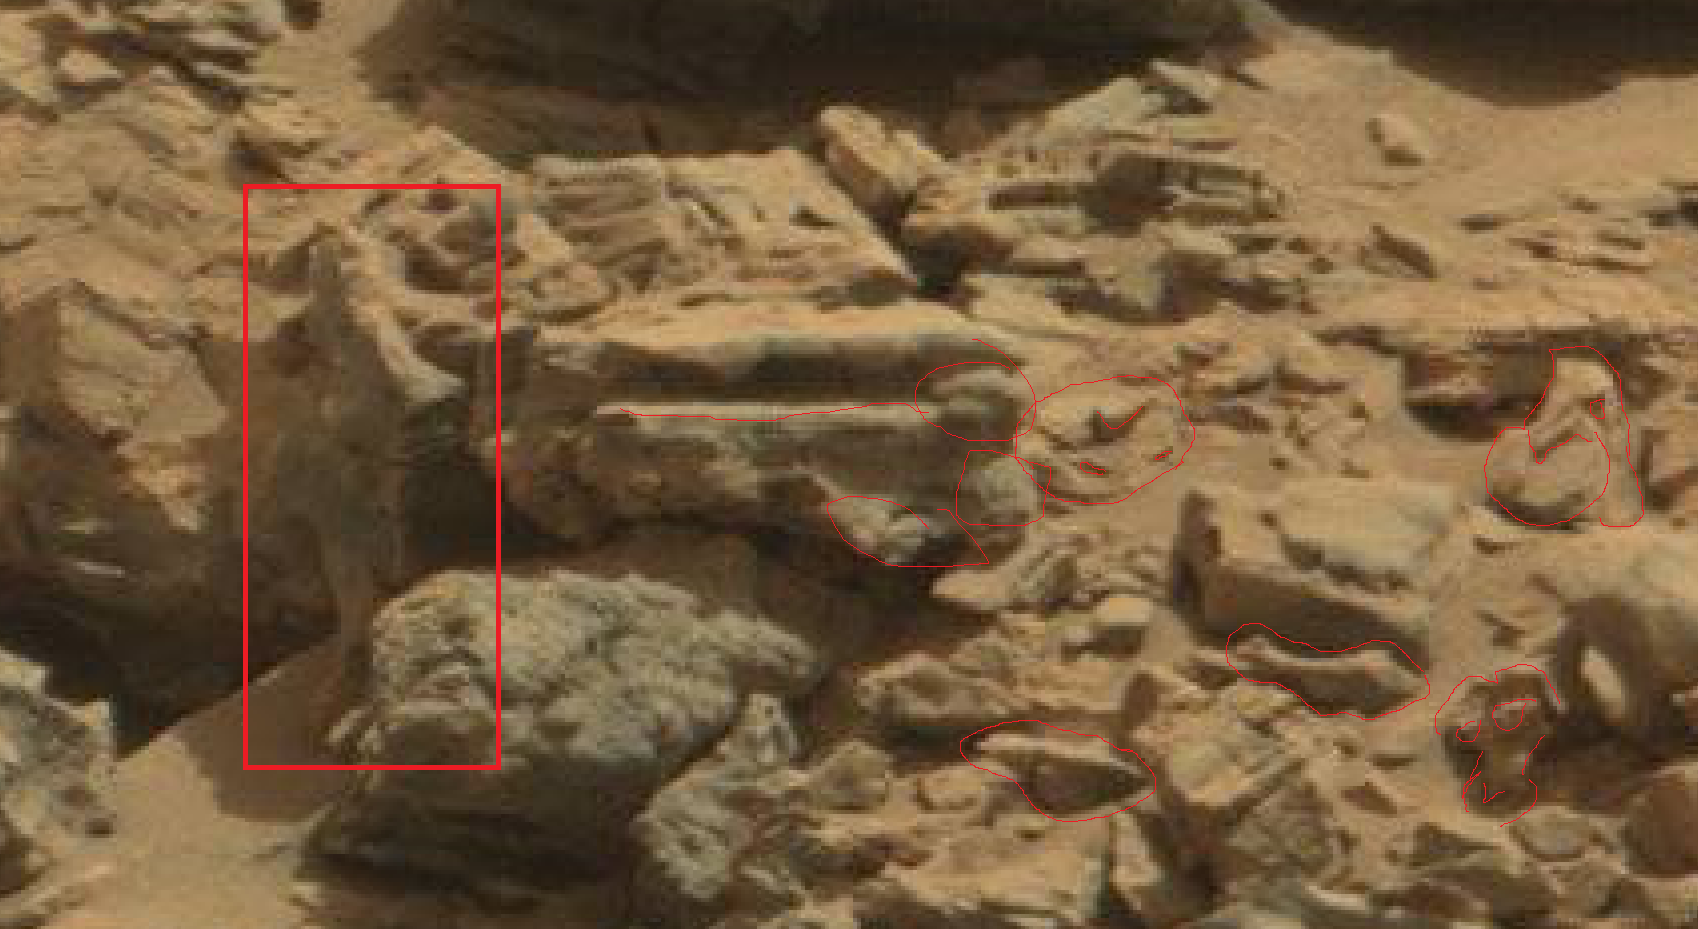 mars anomaly horse and other items outined sol 712 was life on mars